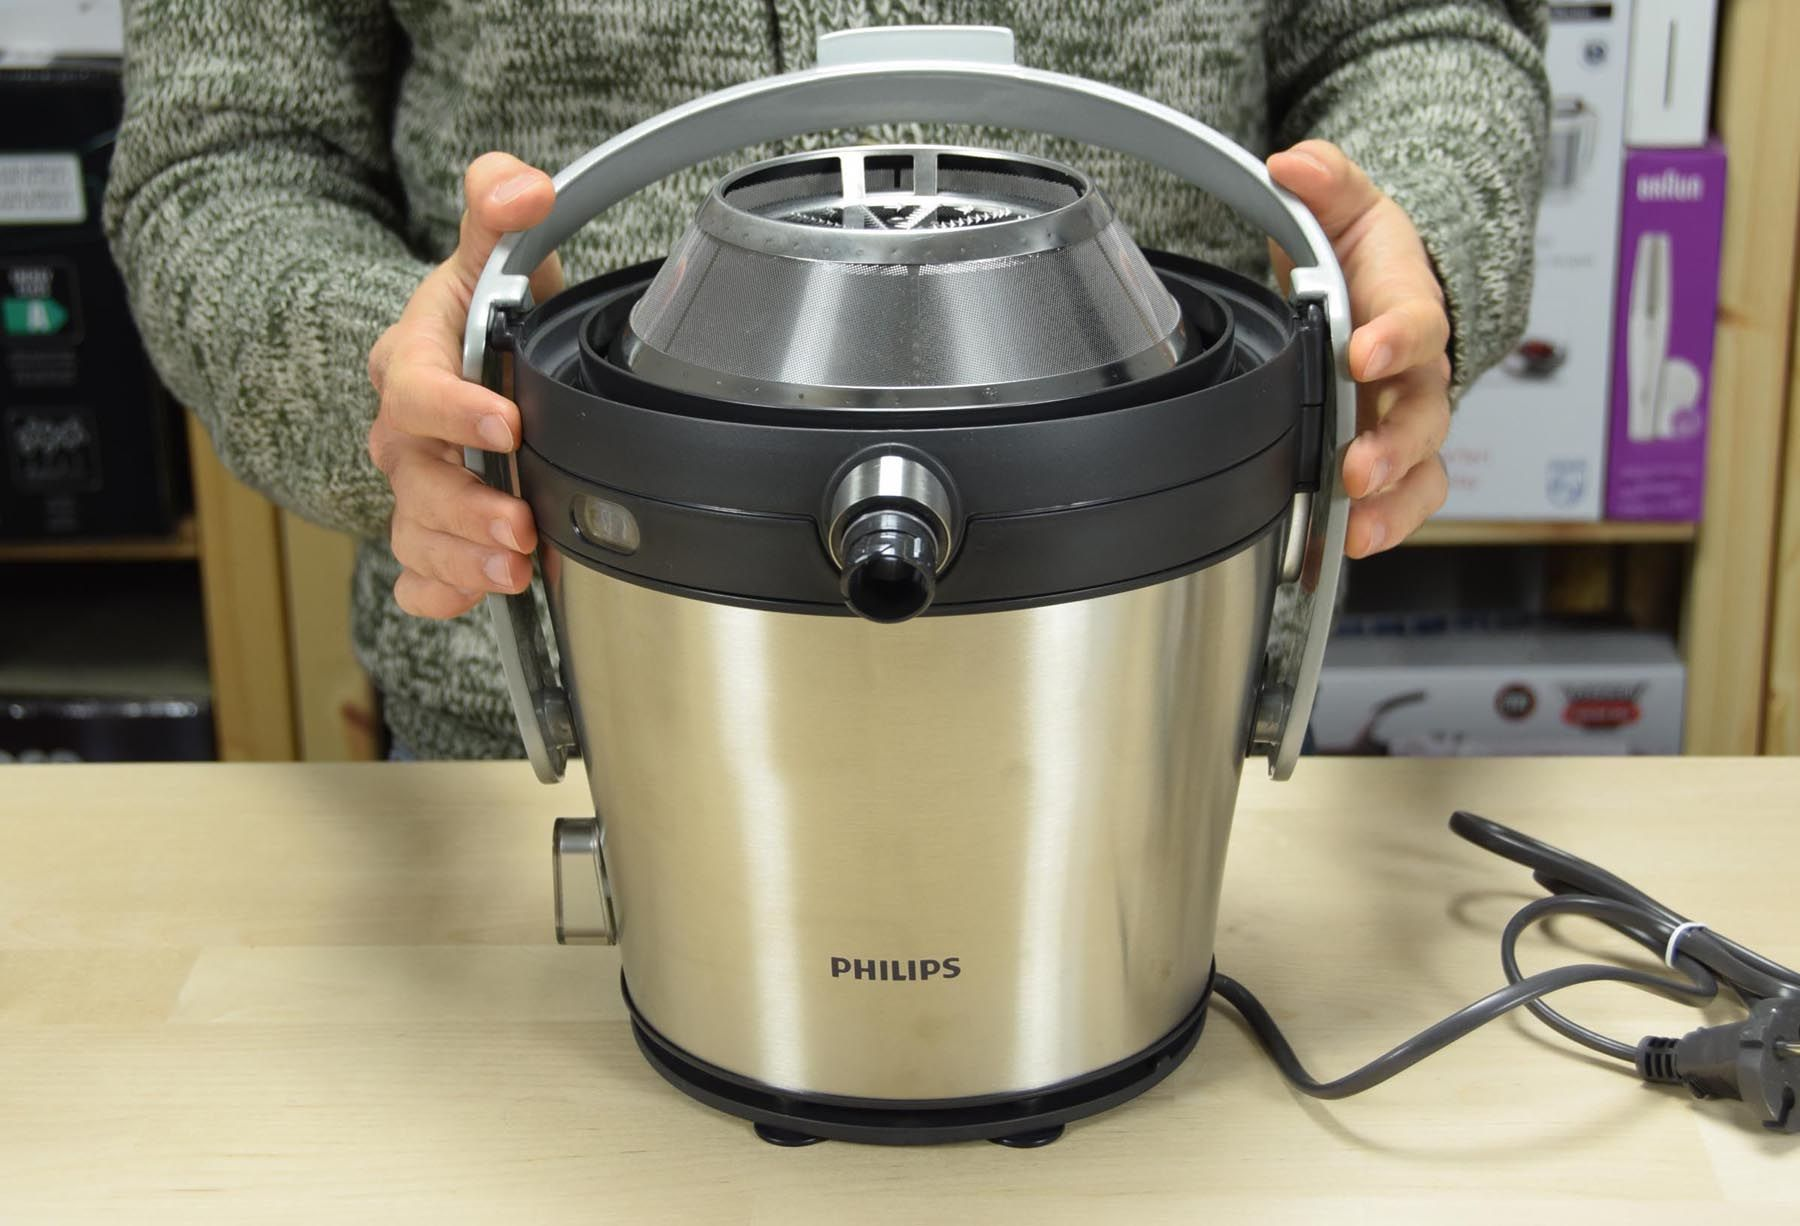 Philips hr1871 70